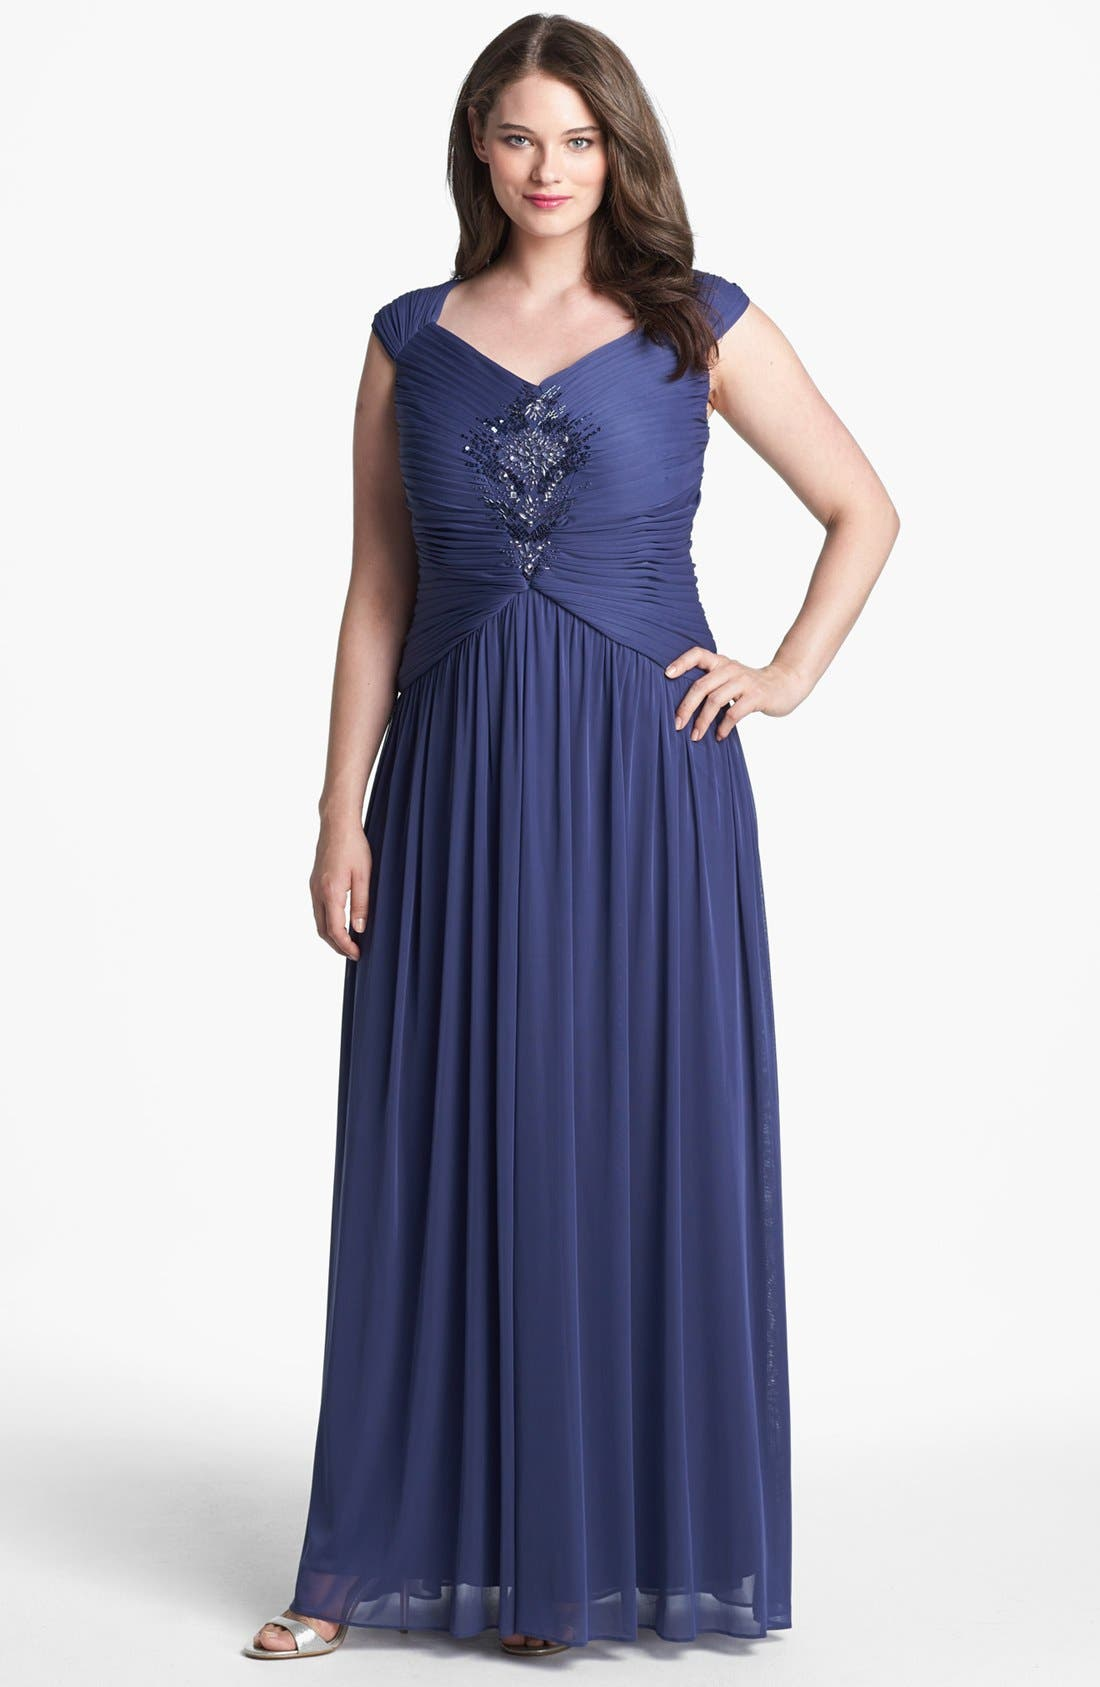 Alternate Image 1 Selected - Adrianna Papell Embellished Pleat Gown (Plus Size)